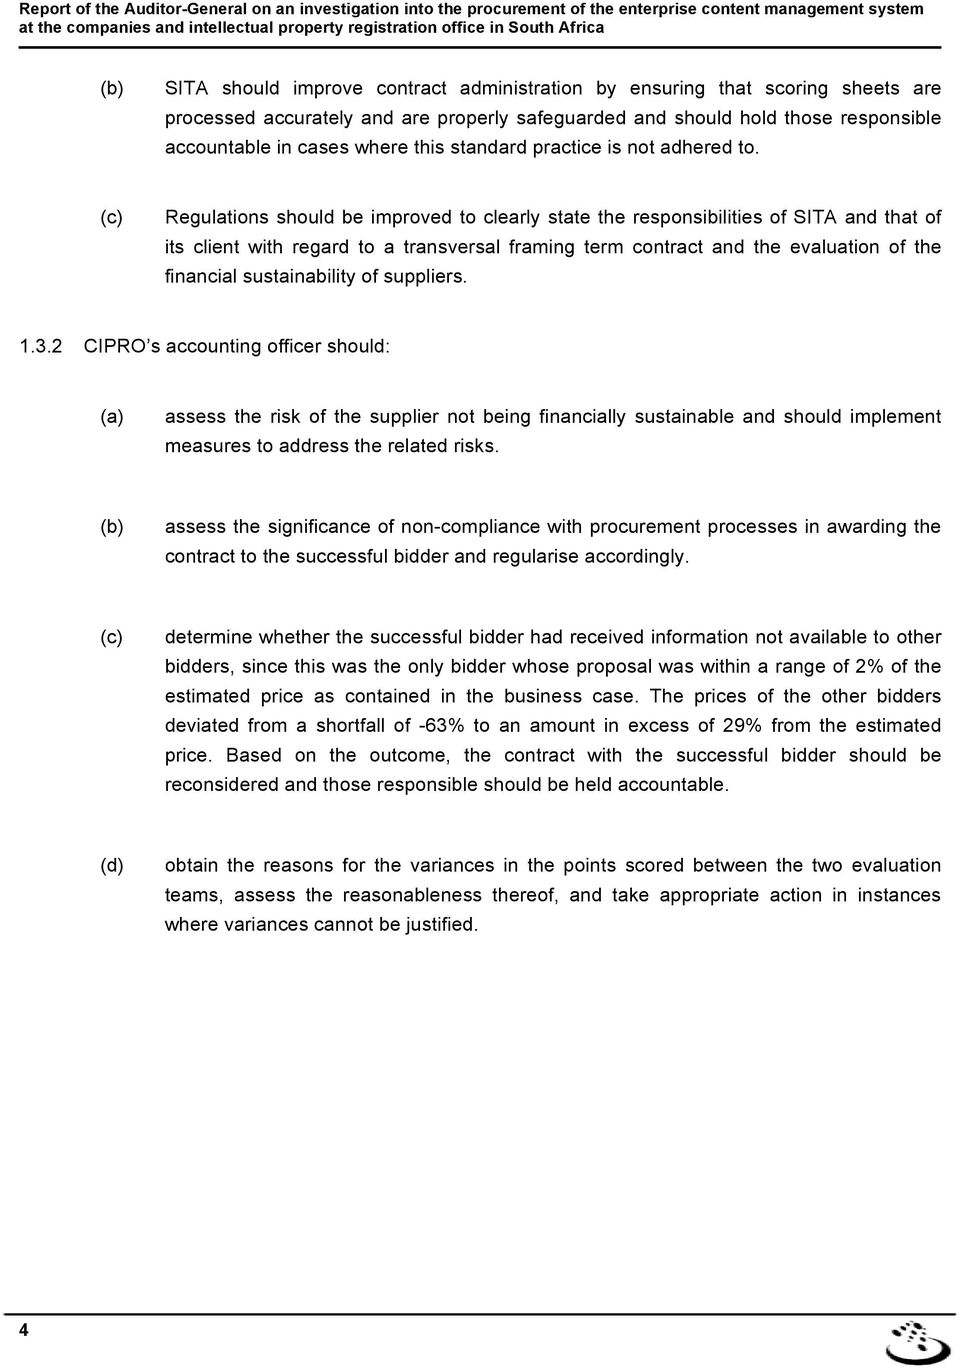 (c) Regulations should be improved to clearly state the responsibilities of SITA and that of its client with regard to a transversal framing term contract and the evaluation of the financial